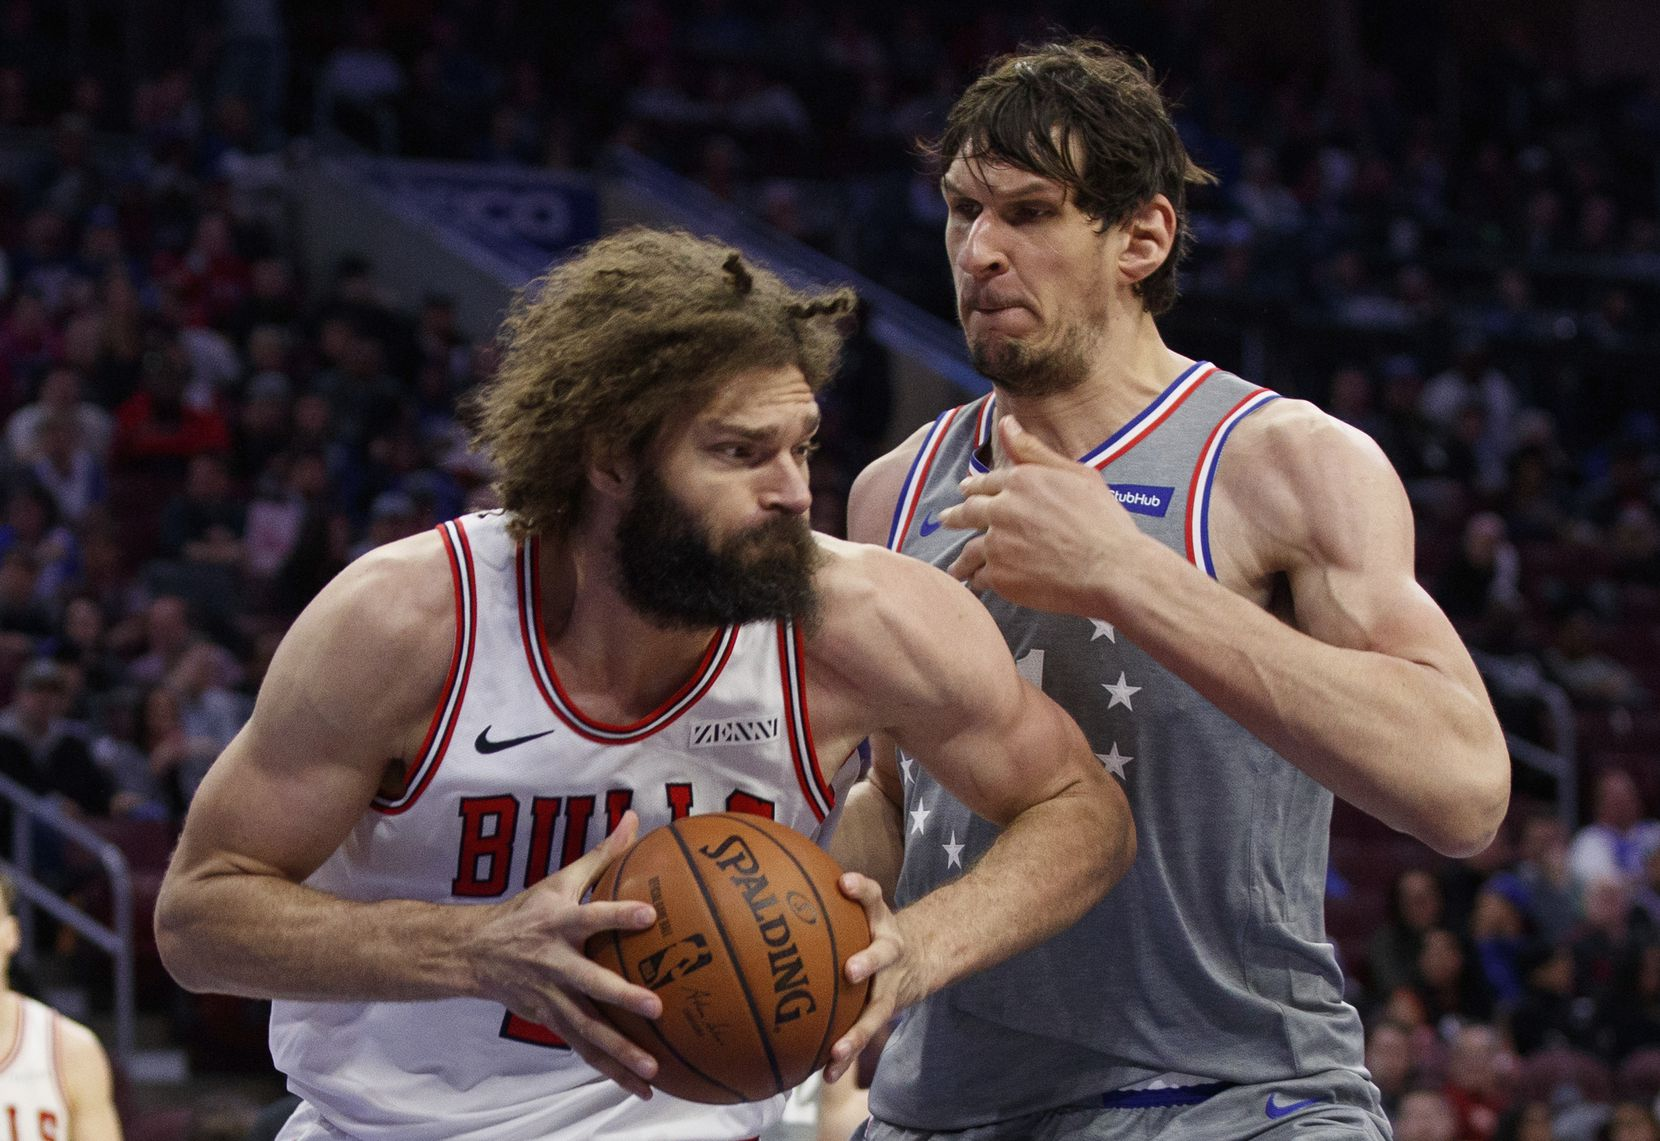 FILE - Chicago Bulls' Robin Lopez, left, makes his move against Philadelphia 76ers' Boban Marjanovic, right, of Serbia, during the second half of an NBA basketball game, Wednesday, April 10, 2019, in Philadelphia. 76ers won 125-109. (AP Photo/Chris Szagola)